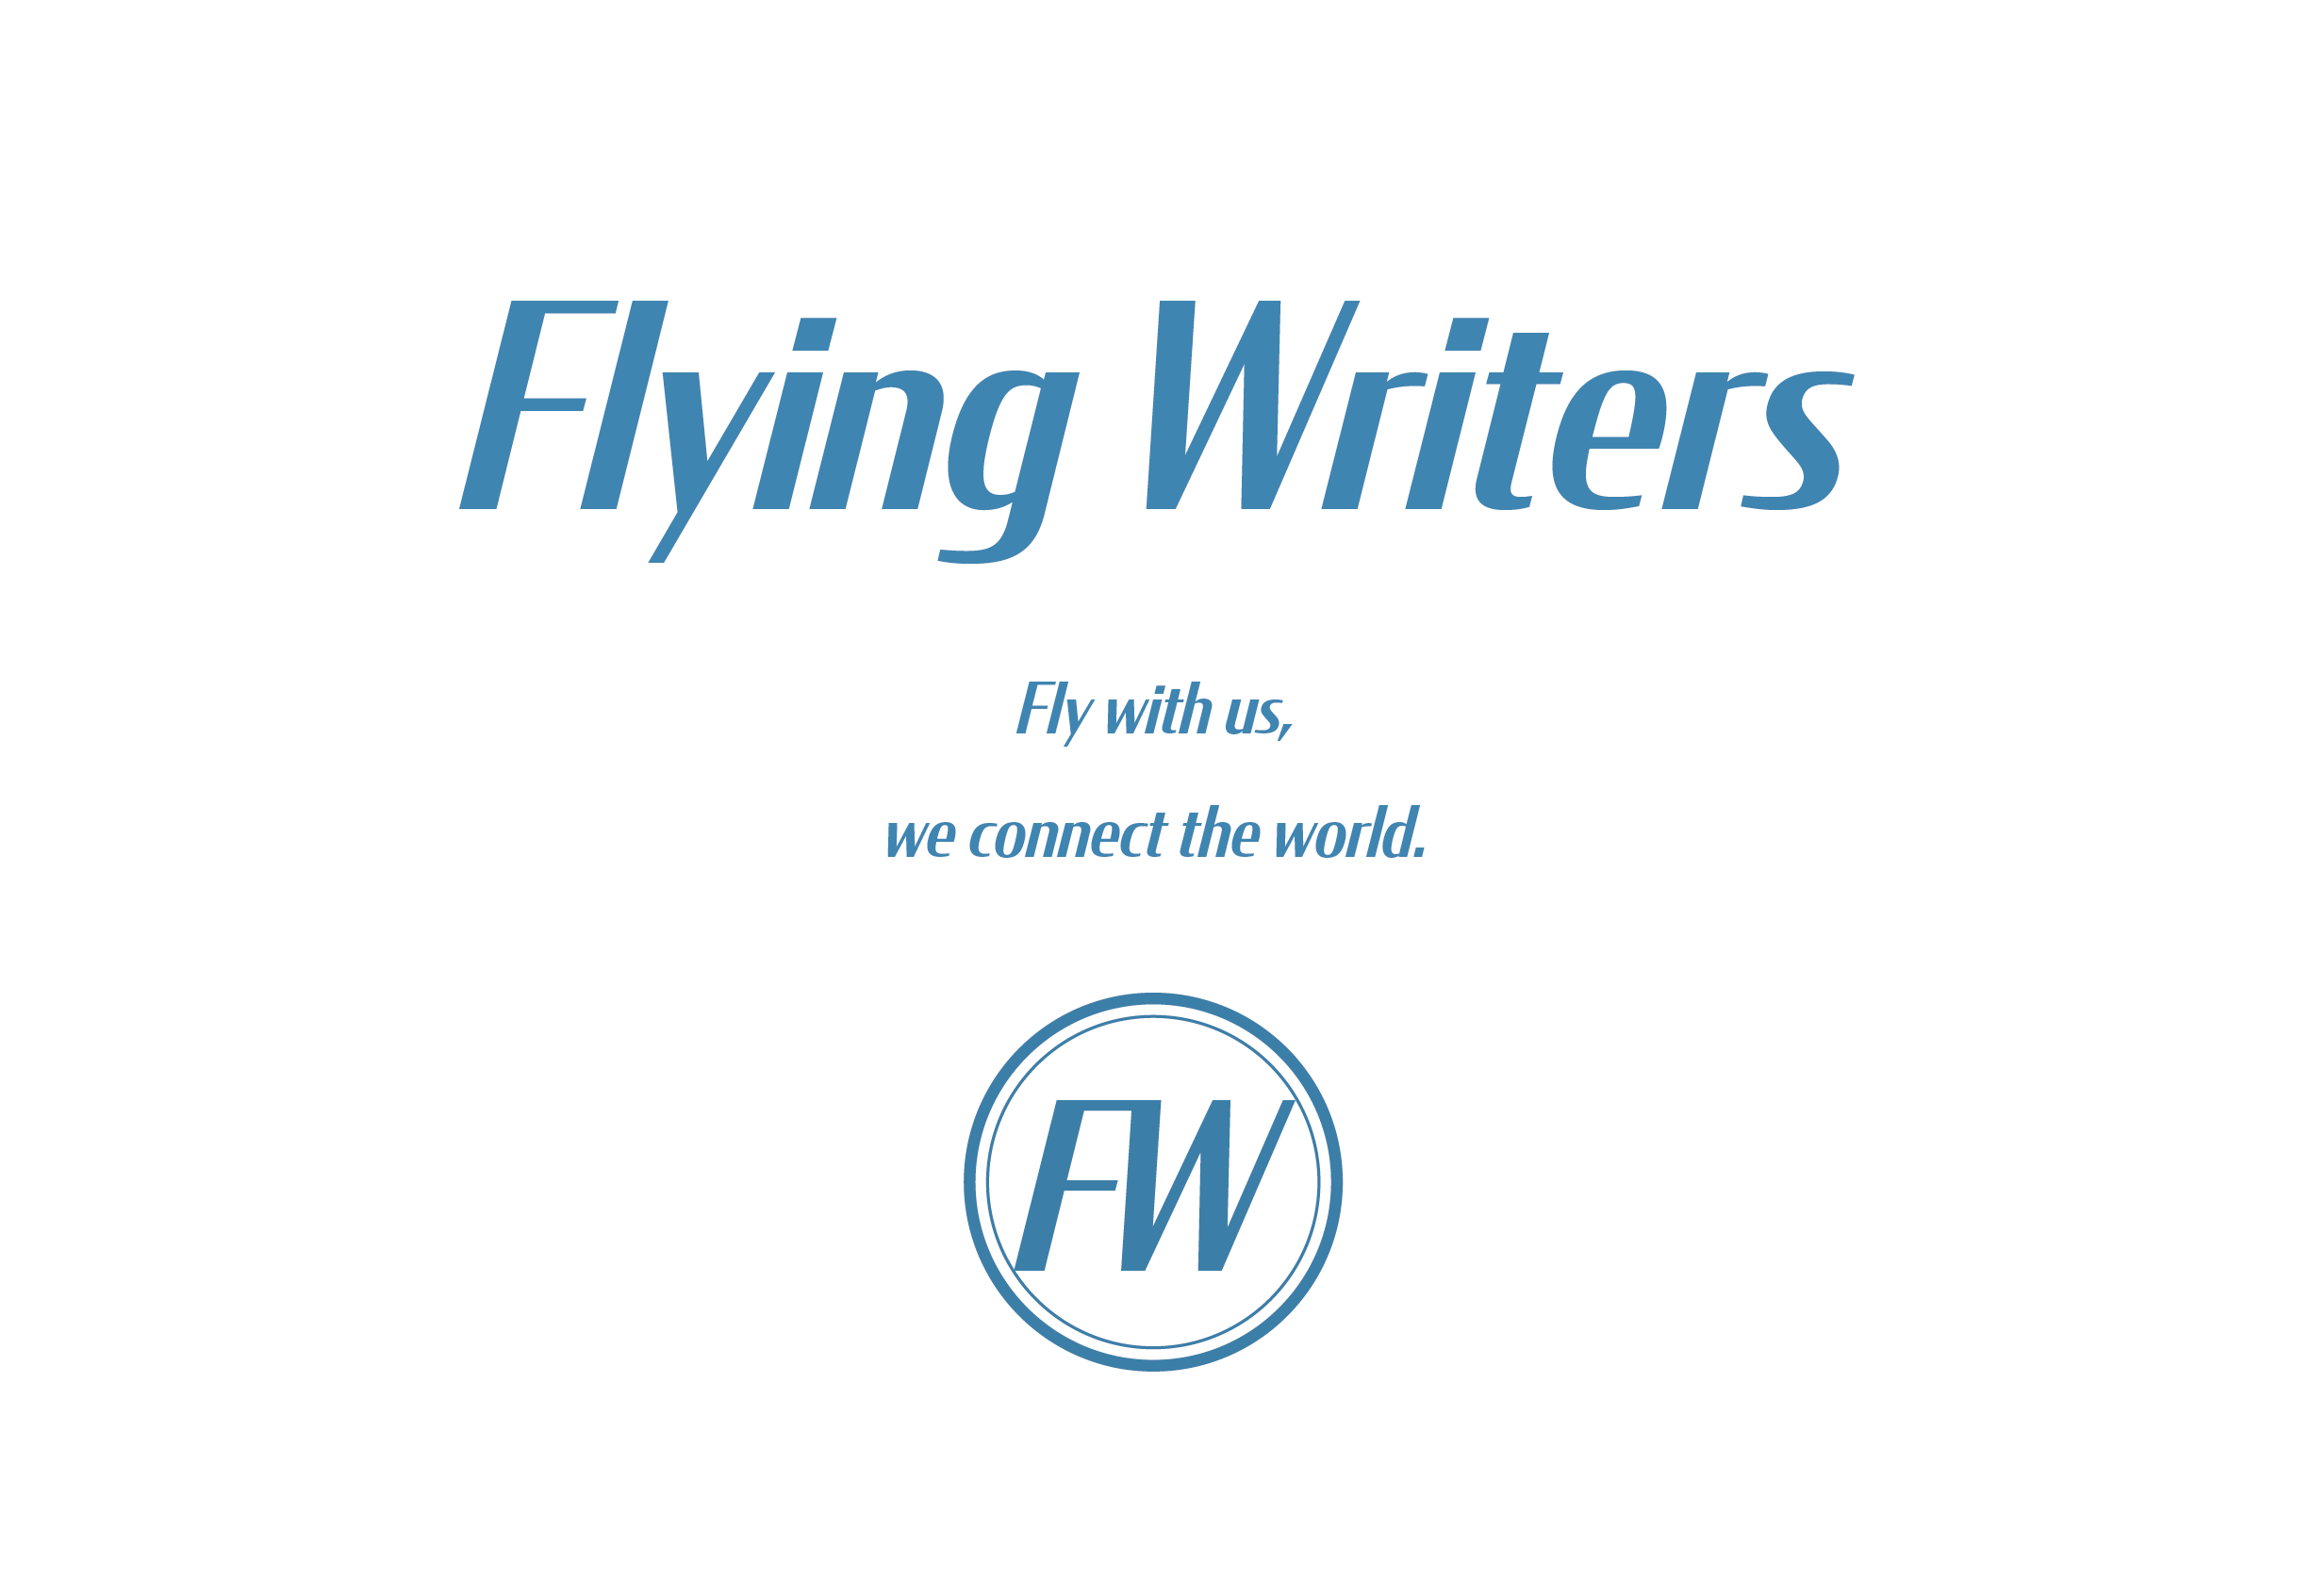 flyingwriterswhite.png